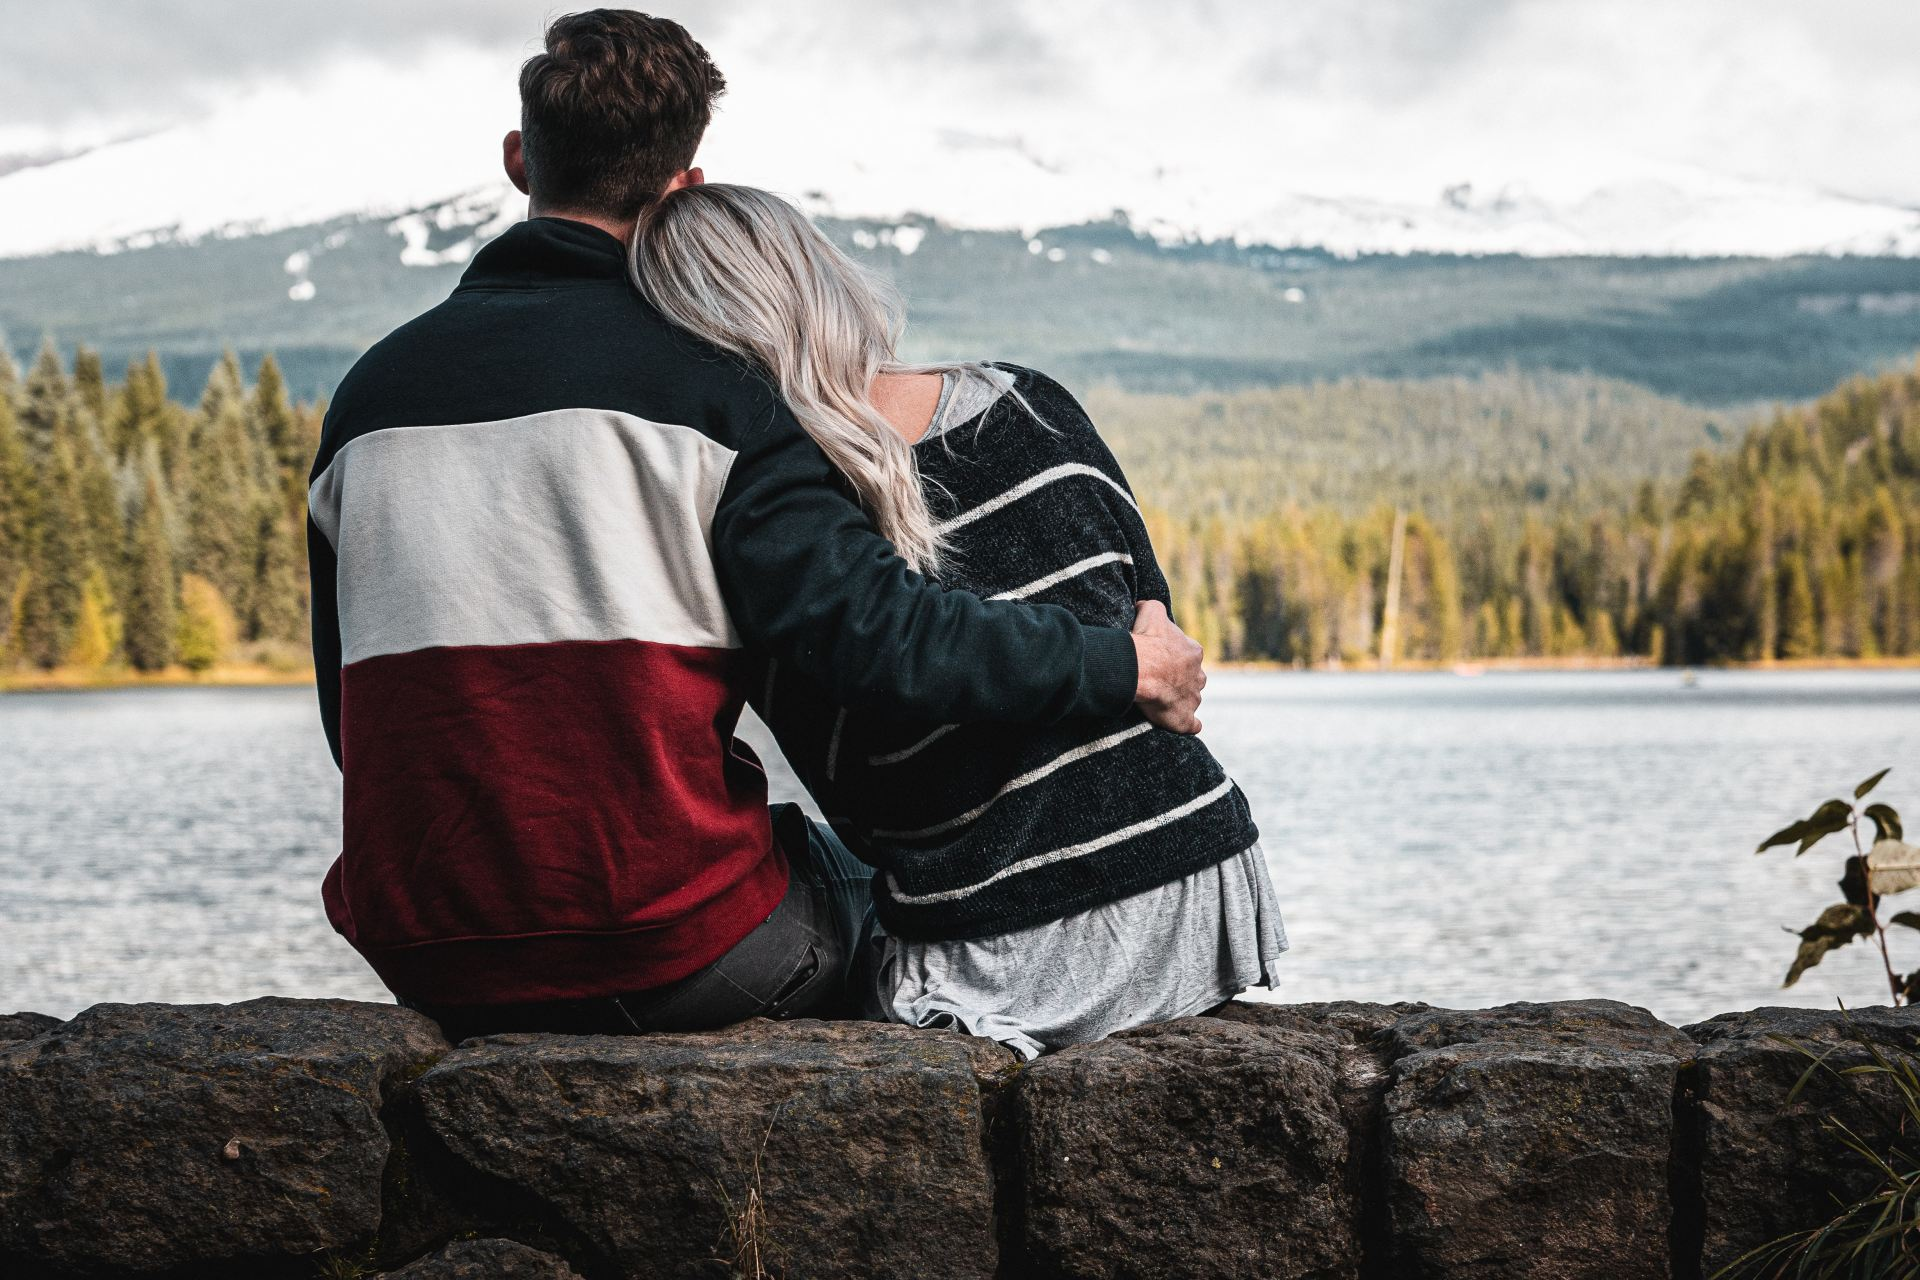 X Reasons You Aren't Finding Love On Dating Sites (Even Though You're A Catch)